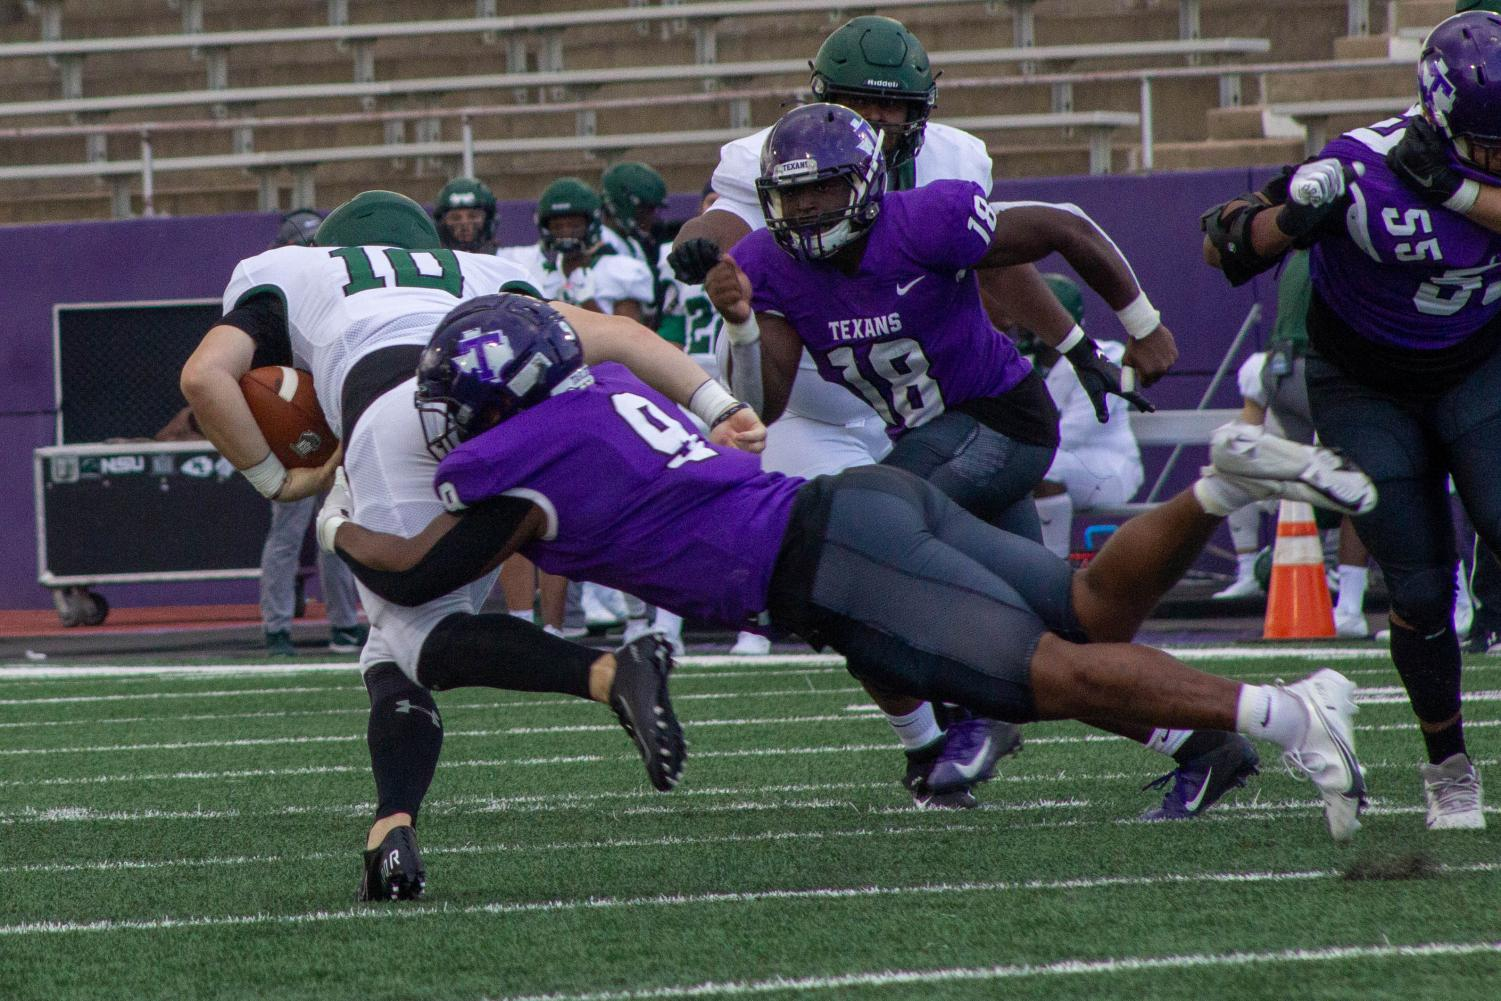 ChadWick Thibodeaux tackling an opponent during the Northeastern state football game on March 27, 2021.